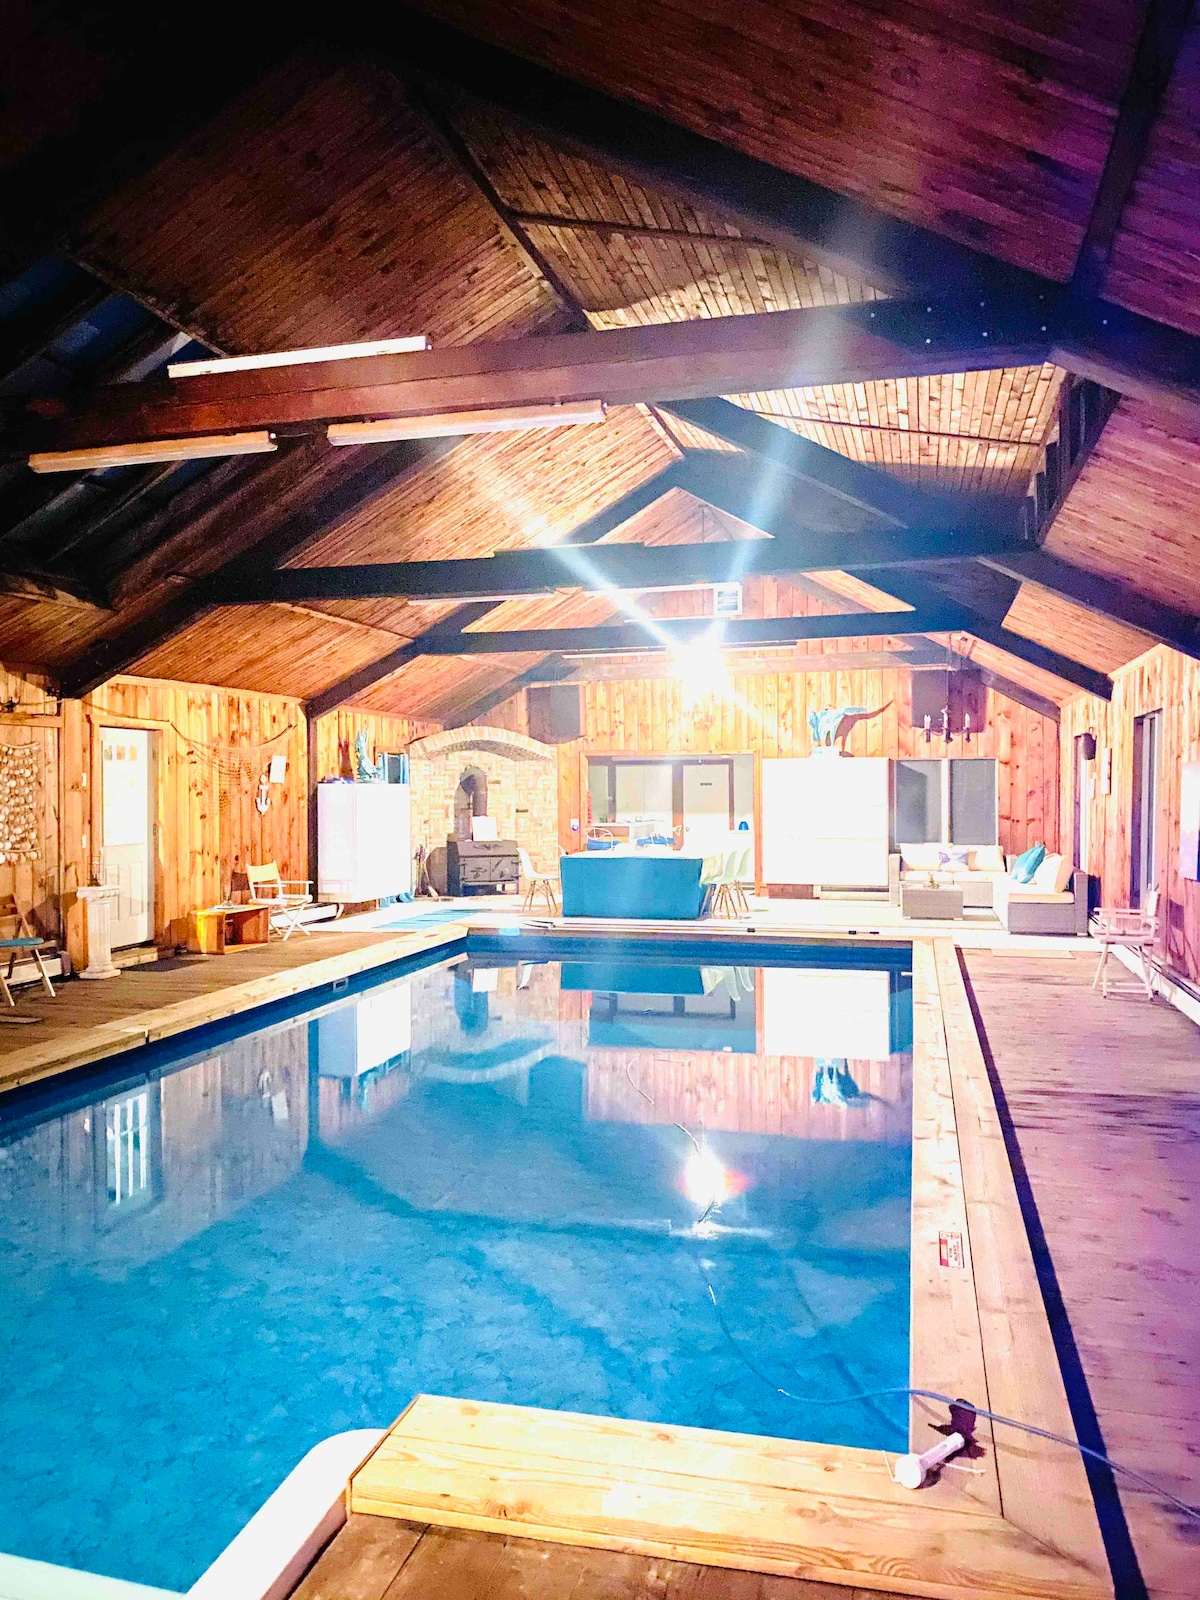 Airbnb Poconos With Indoor Pool : airbnb, poconos, indoor, Perfect, Family/Friends+Indoor, Pool+much, More!, Houses, Wurtsboro,, York,, United, States